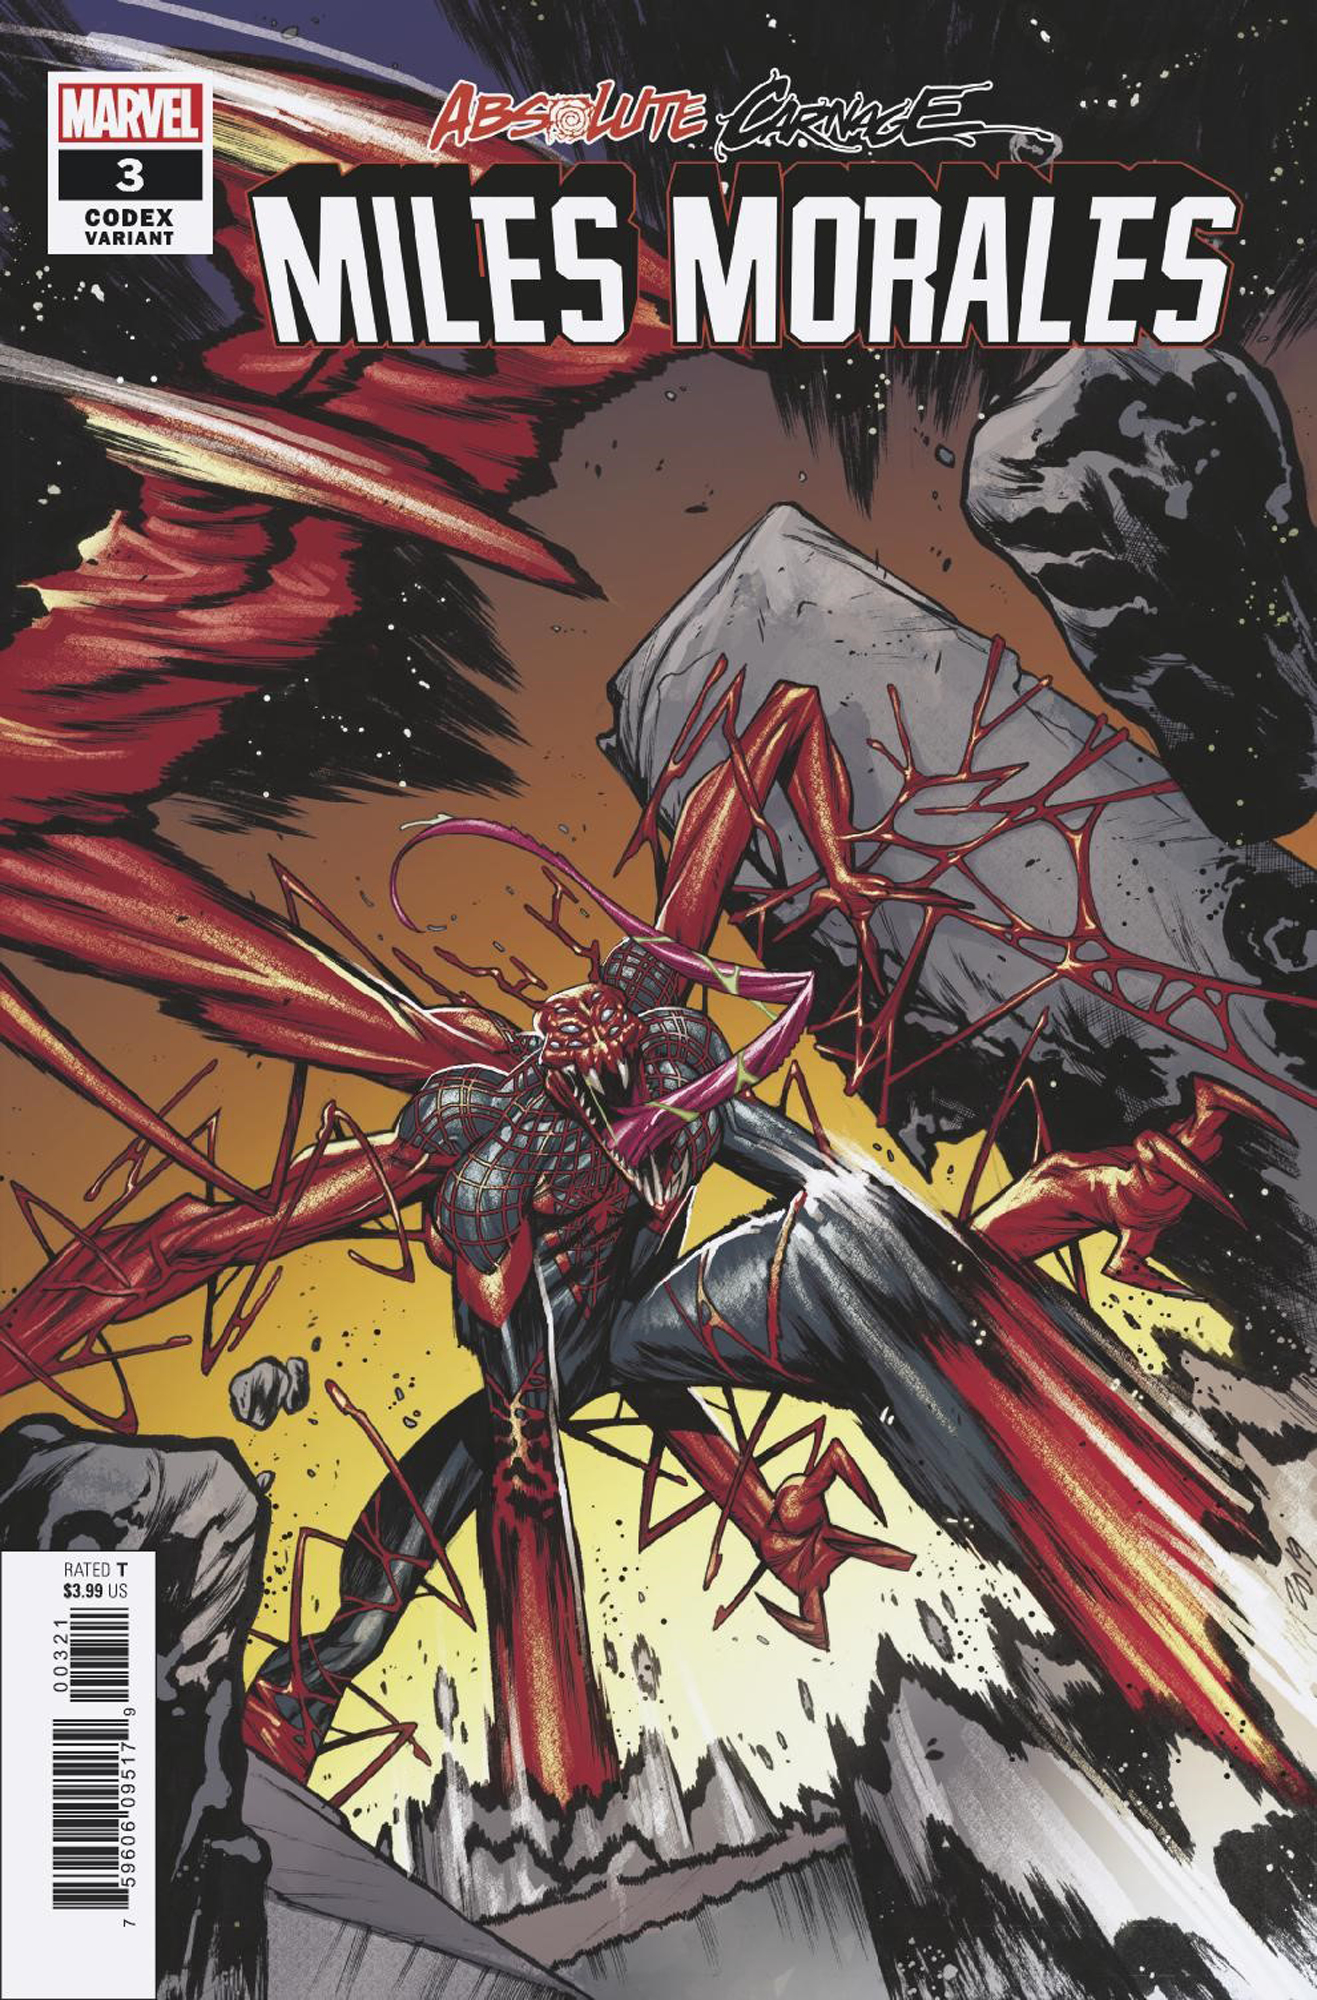 ABSOLUTE CARNAGE MILES MORALES #3 (OF 3) JACINTO CODEX VAR A